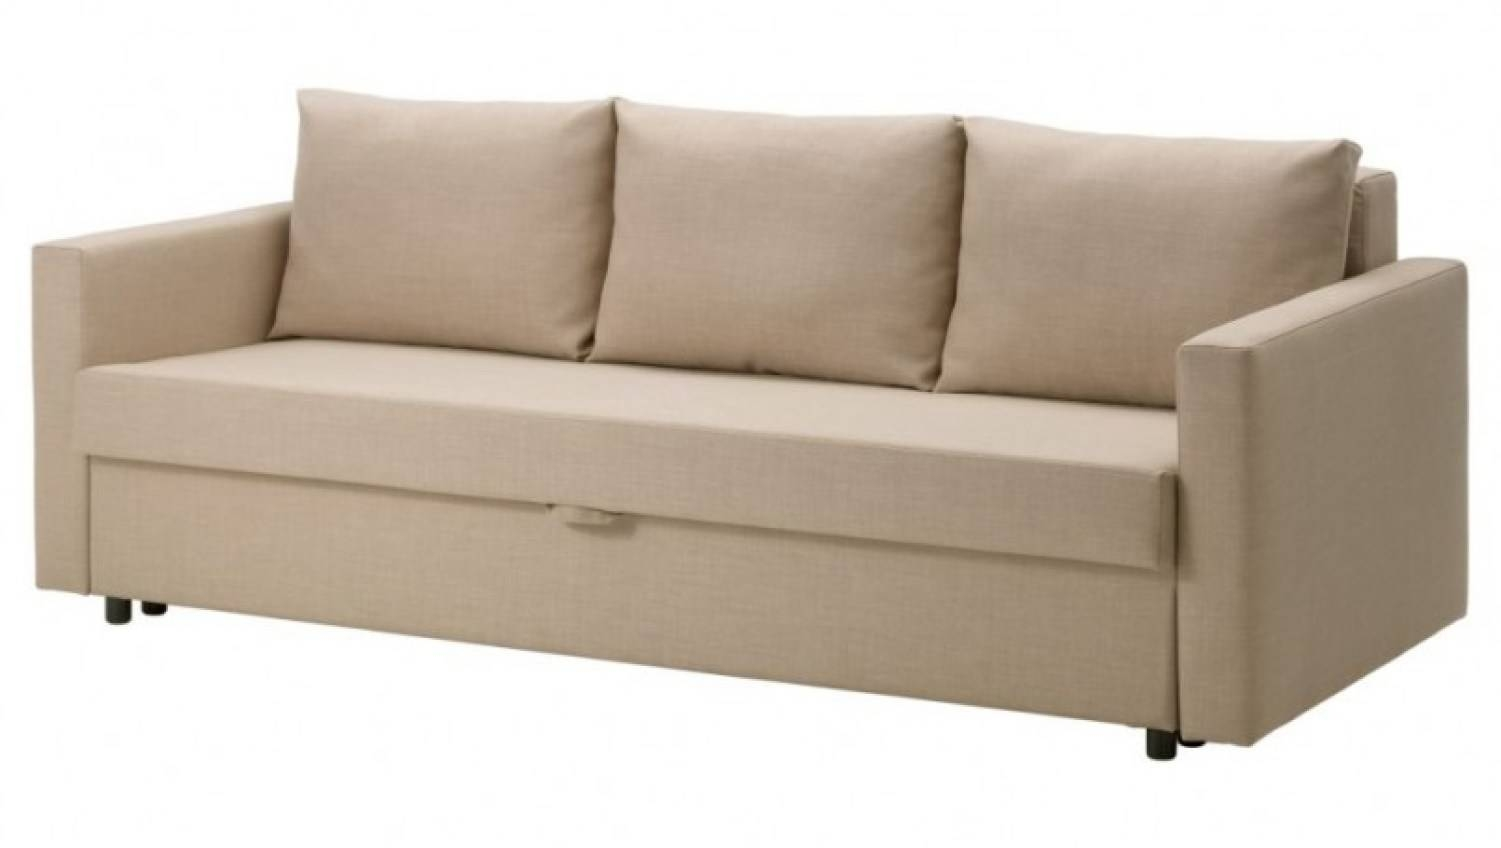 Sofa : The Best Sofa Sleepers Tourdecarroll Within Sofas With pertaining to Sofas With Support Board (Image 6 of 15)